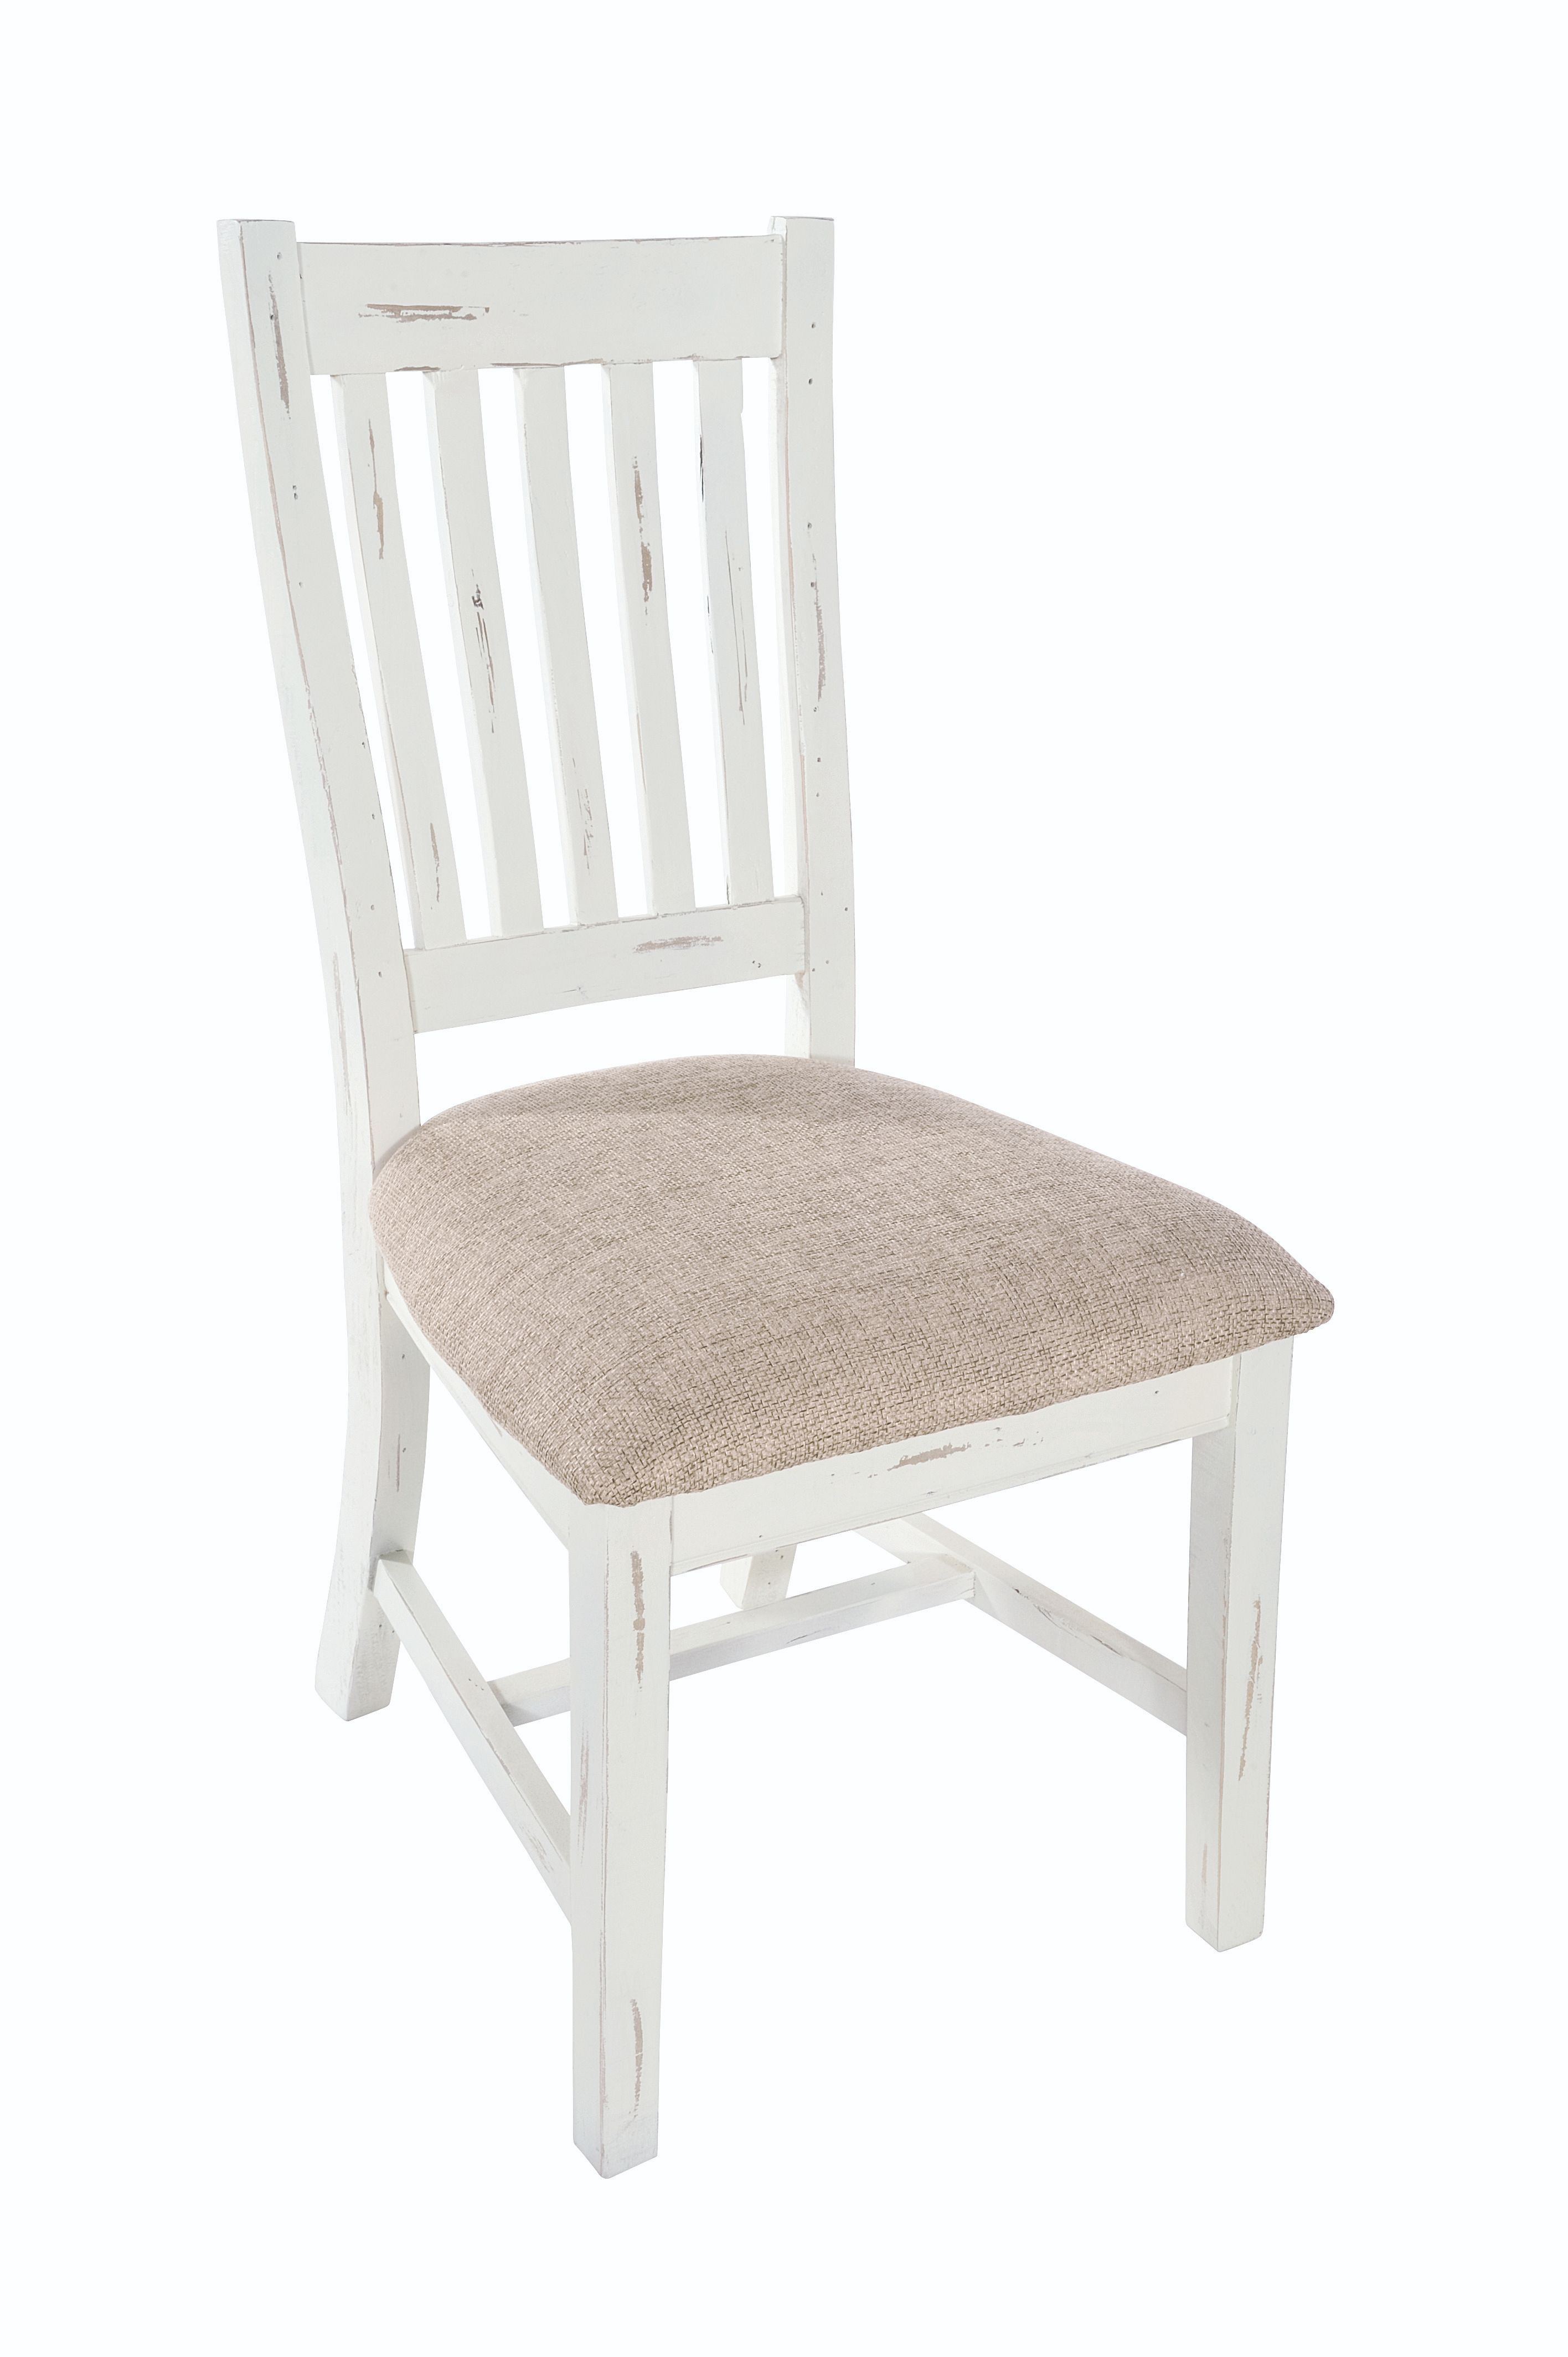 PURBECK DINING CHAIR Distressed Paint & Material Pad